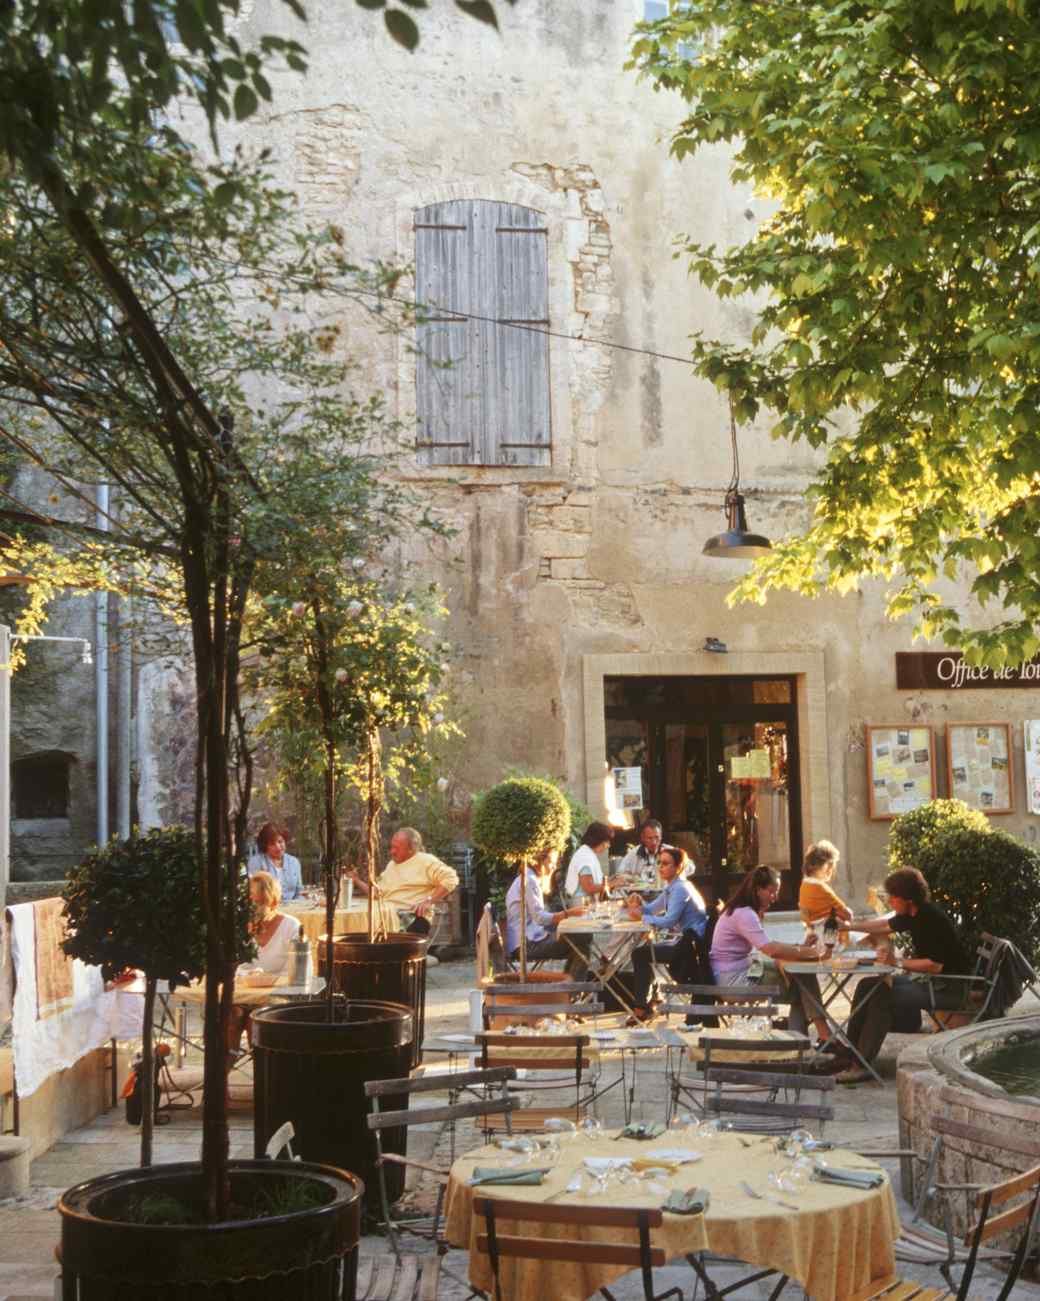 outdoor cafe, Provence, France